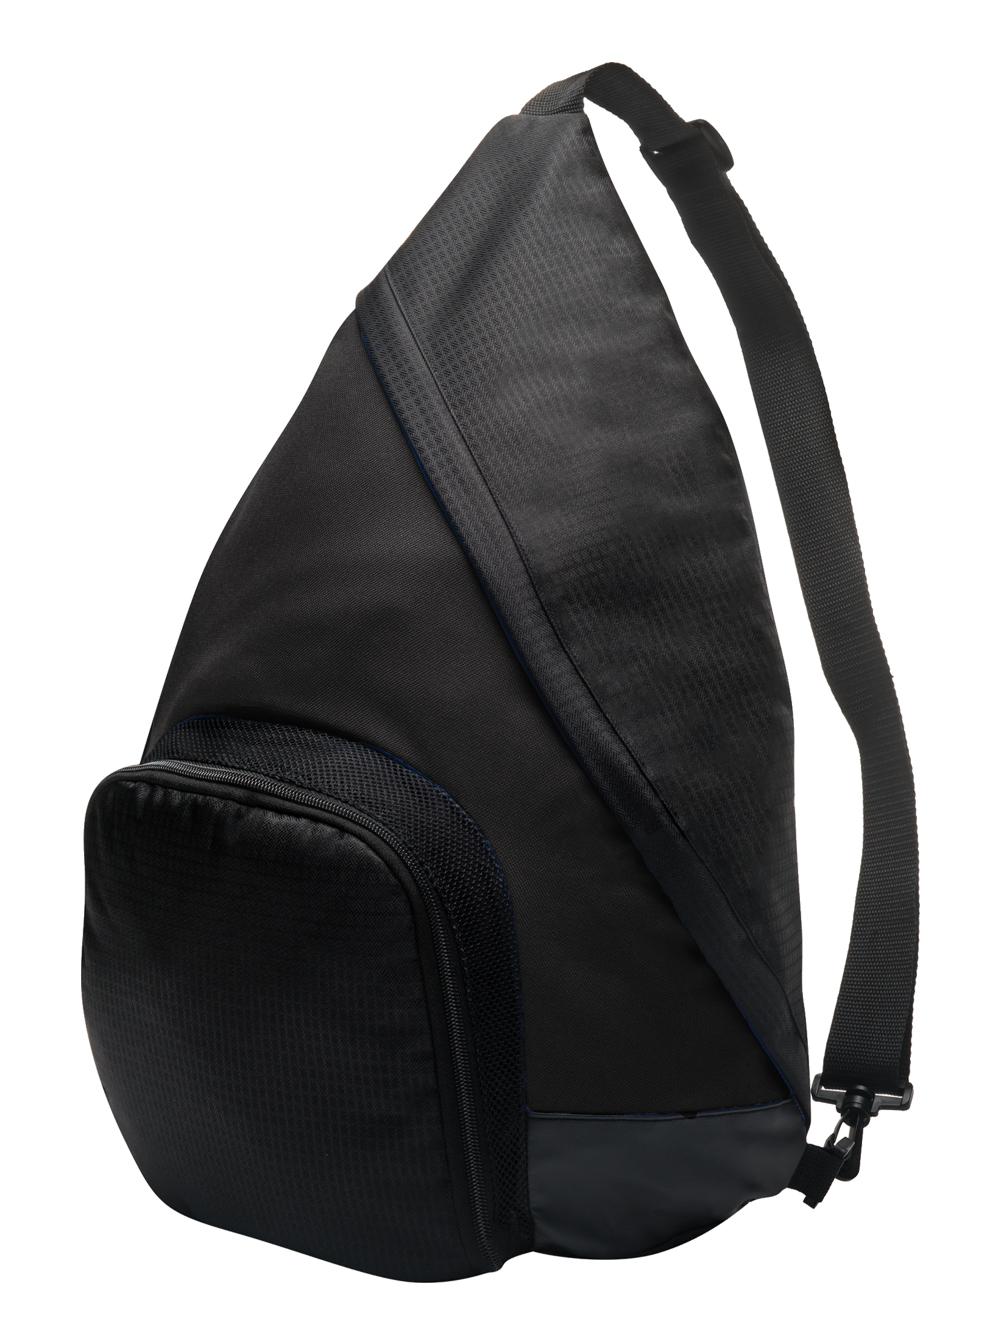 Sling Back Pack Grey Black Midwest Volleyball Warehouse